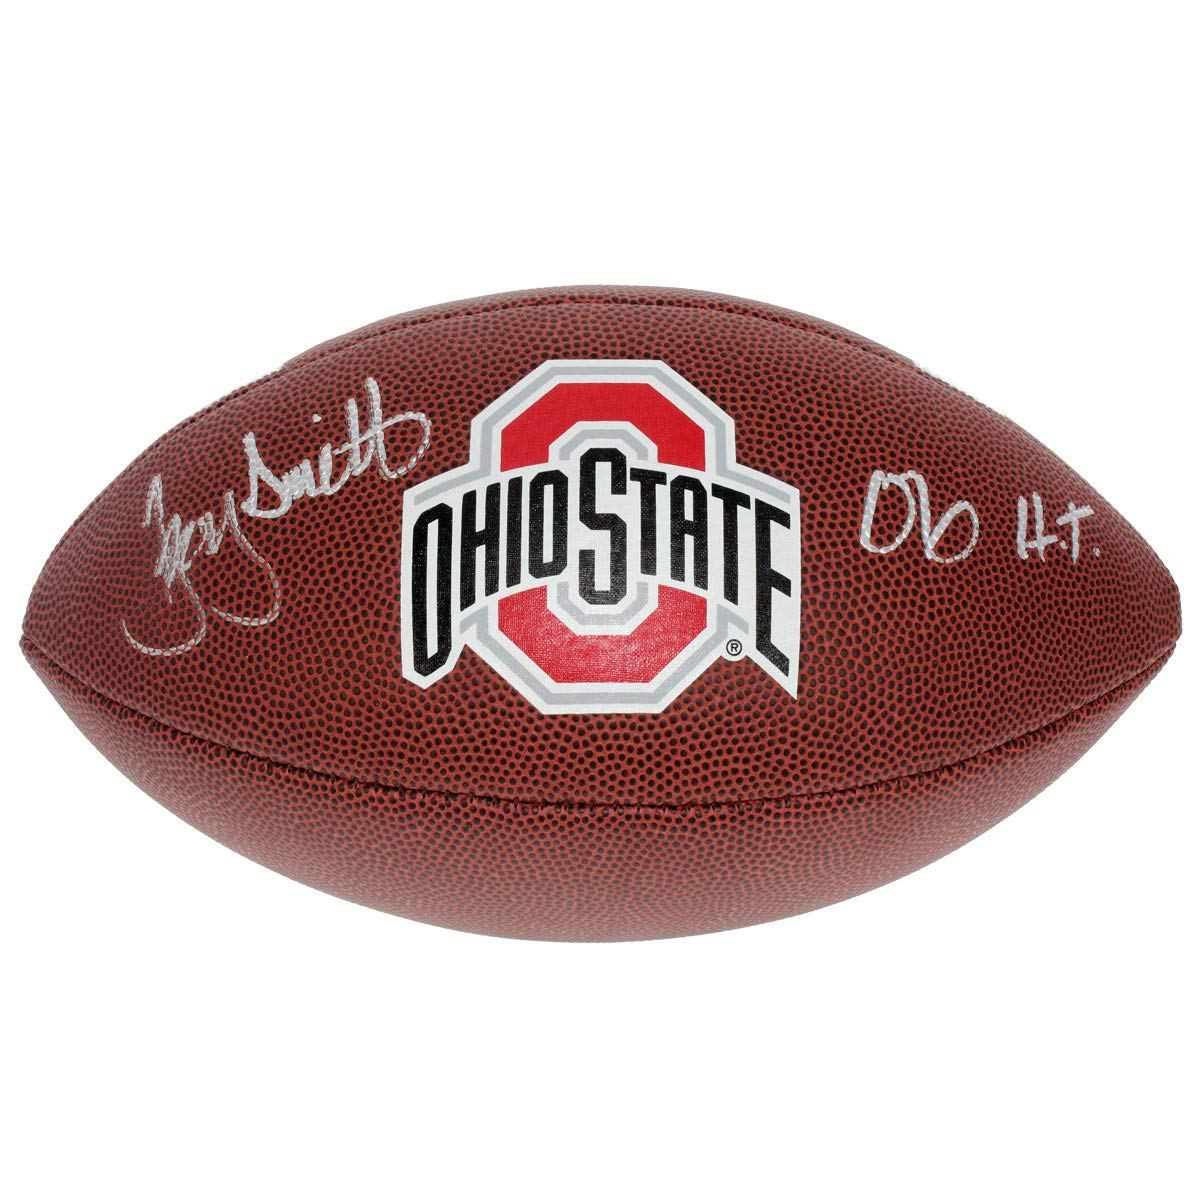 Troy Smith Autographed Signed Ohio State Buckeyes White Panel Football - 06 HT - Certified Authentic